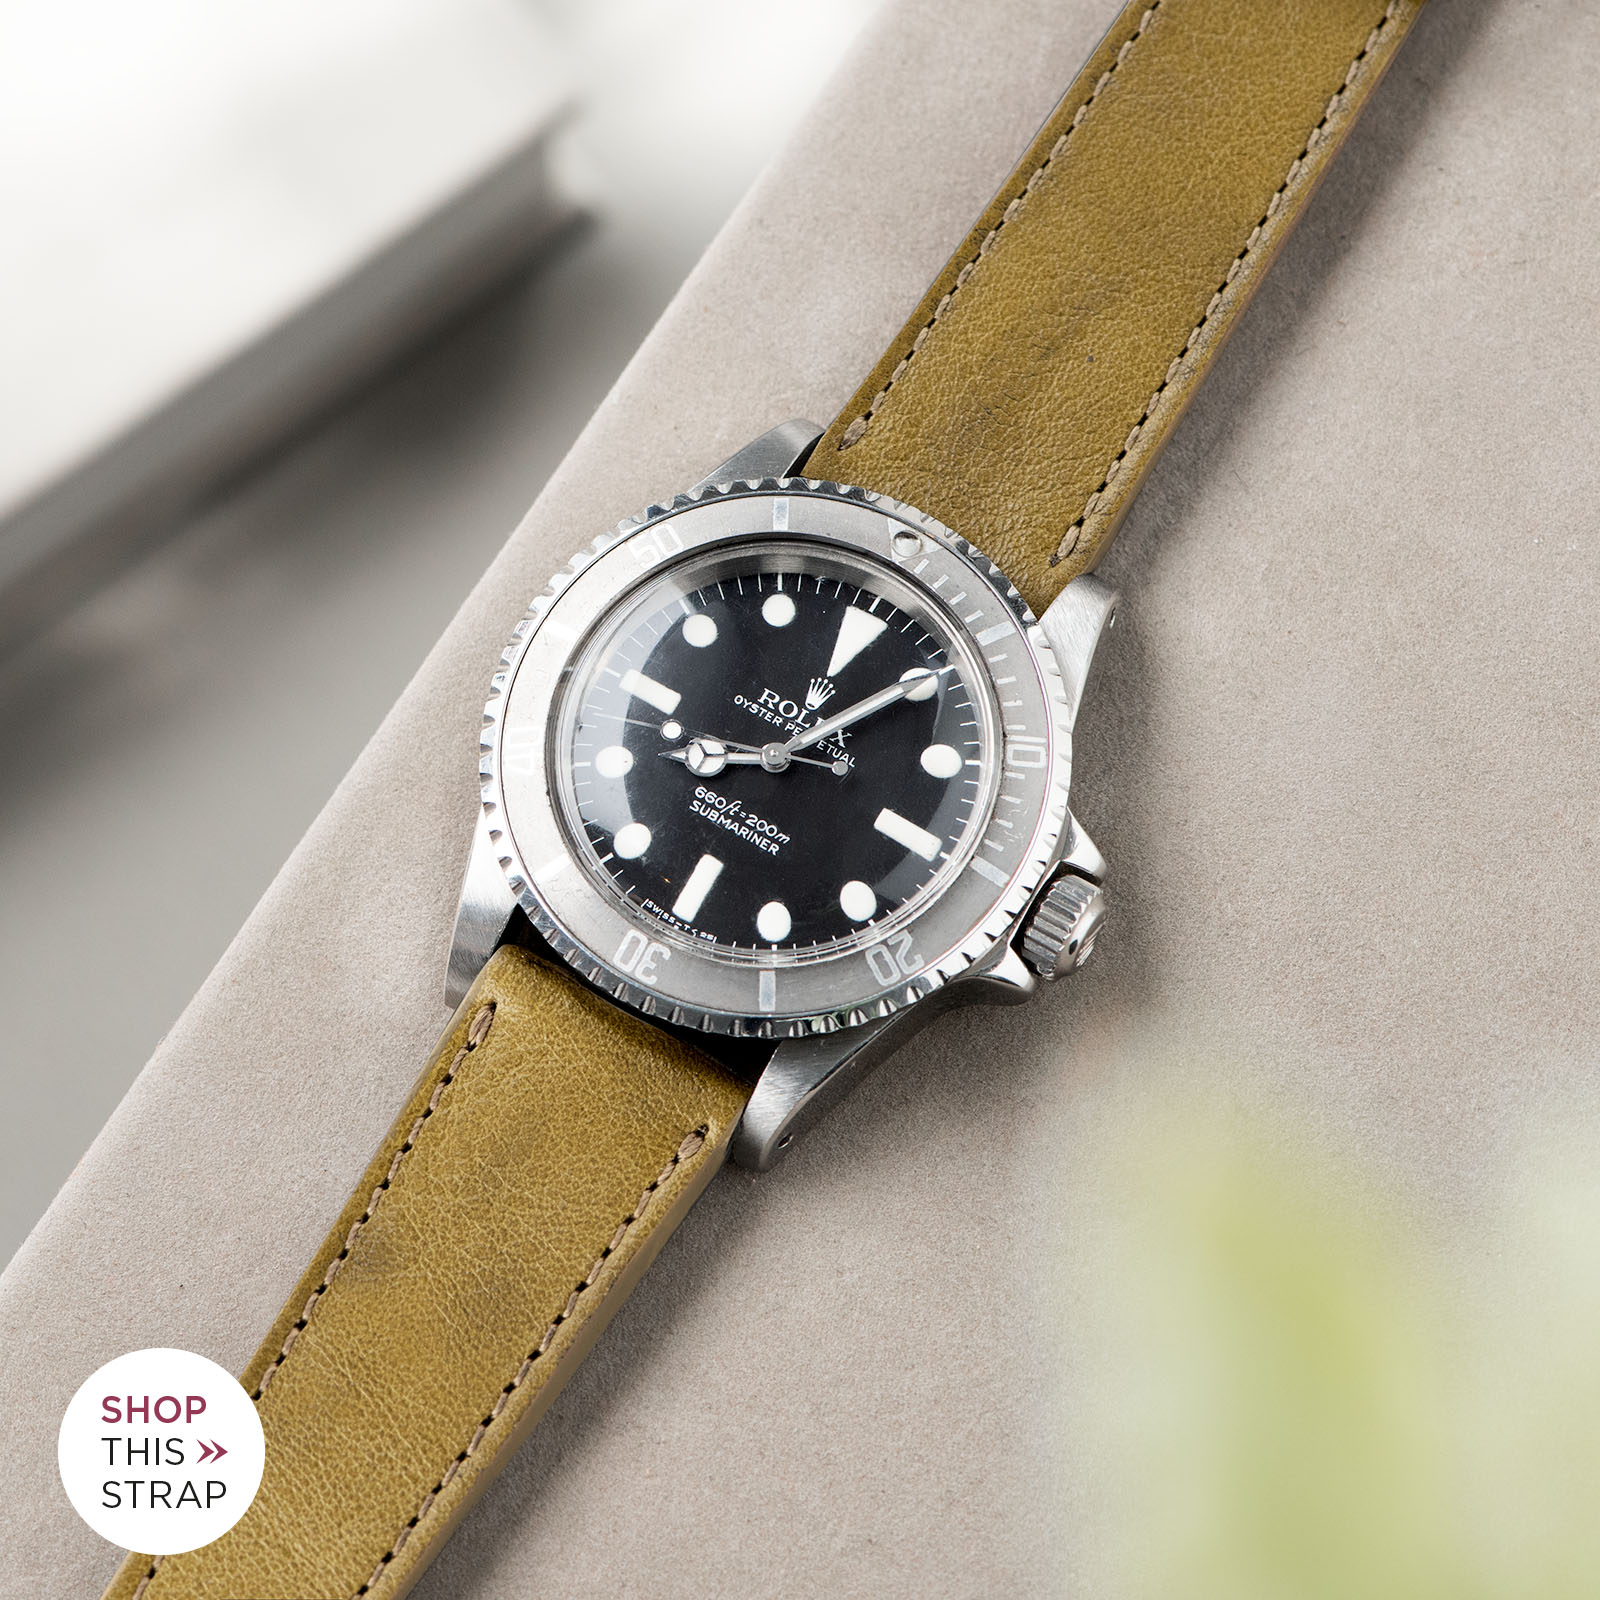 Bulang and Sons_Strap Guide_Rolex Submariner 5513 Faded_Light Olive Leather Watch Strap_B